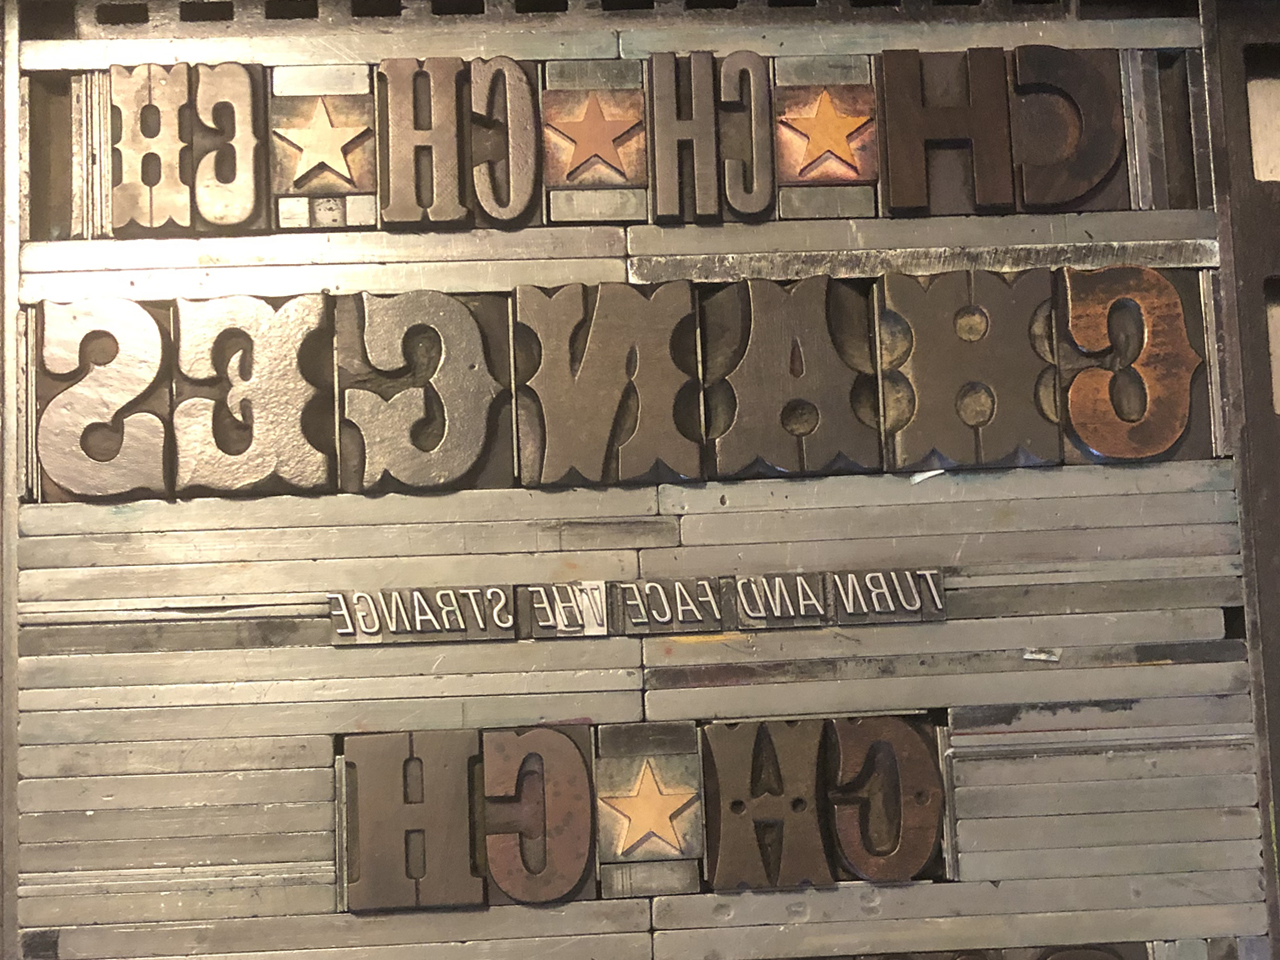 Changes [wood letters]